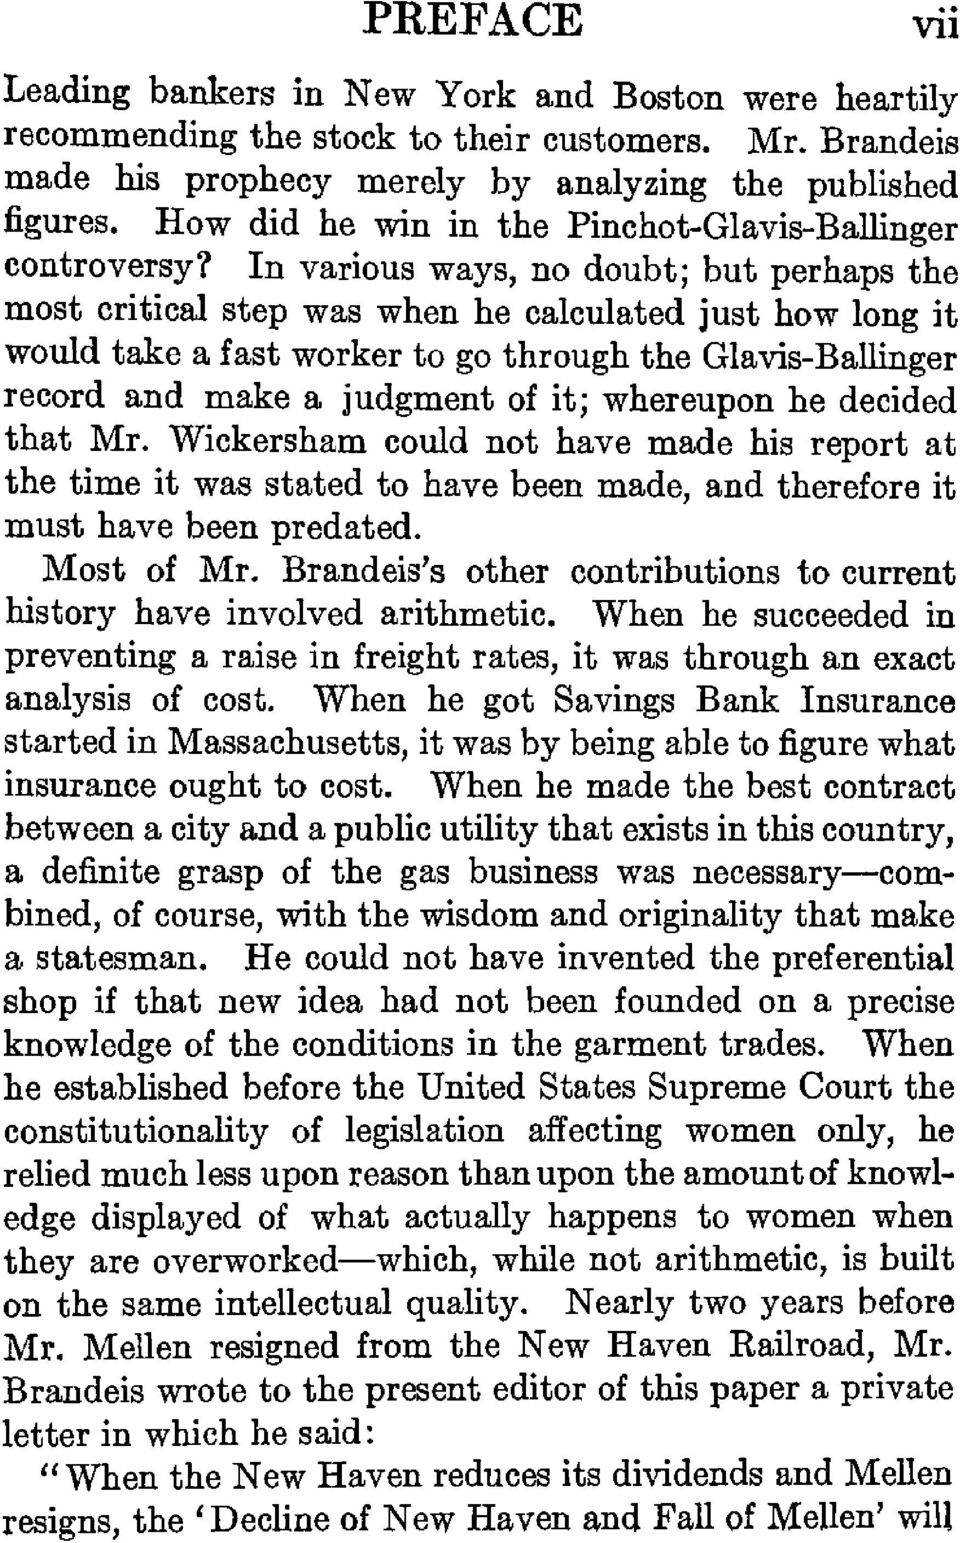 In various ways, no doubt; but perhaps the most critical step was when he calculated just how long it would take a fast worker to go through the Glavis-Ballinger record and make a judgment of